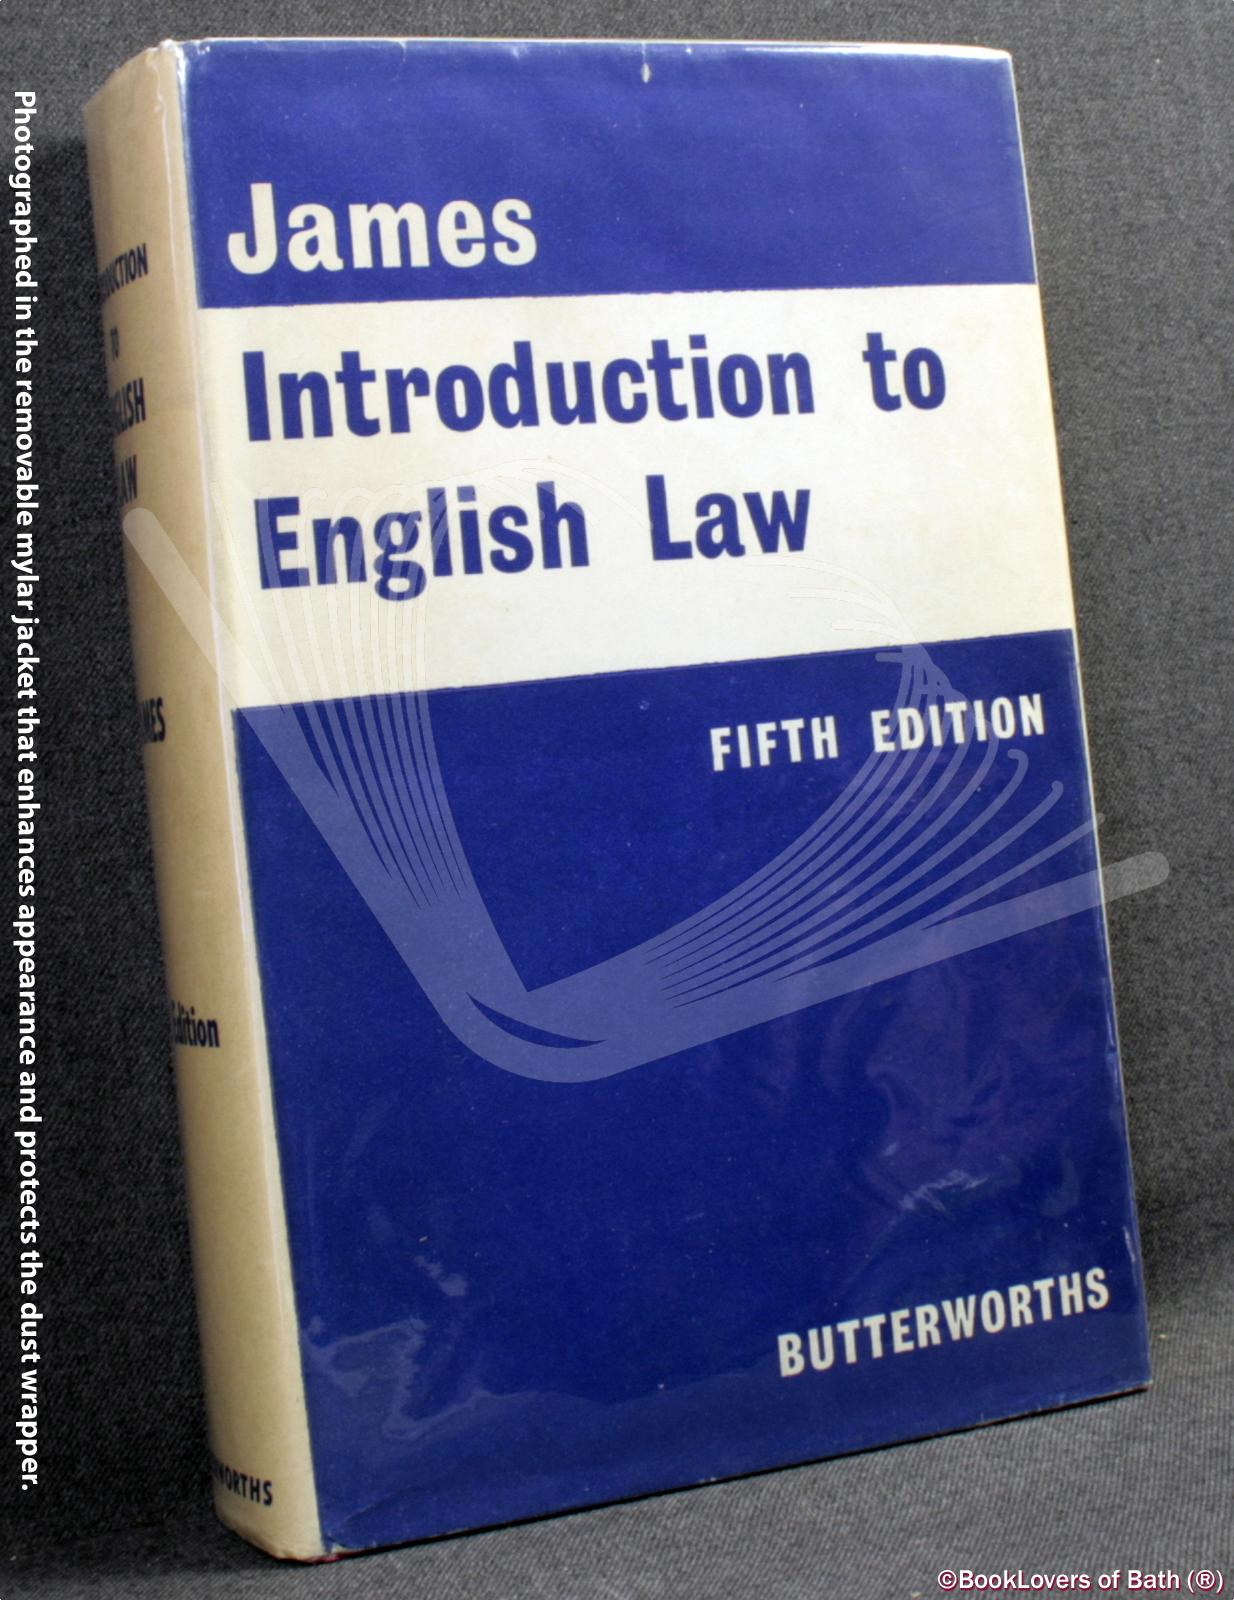 Introduction To English Law Fifth Edition - Philip S. James